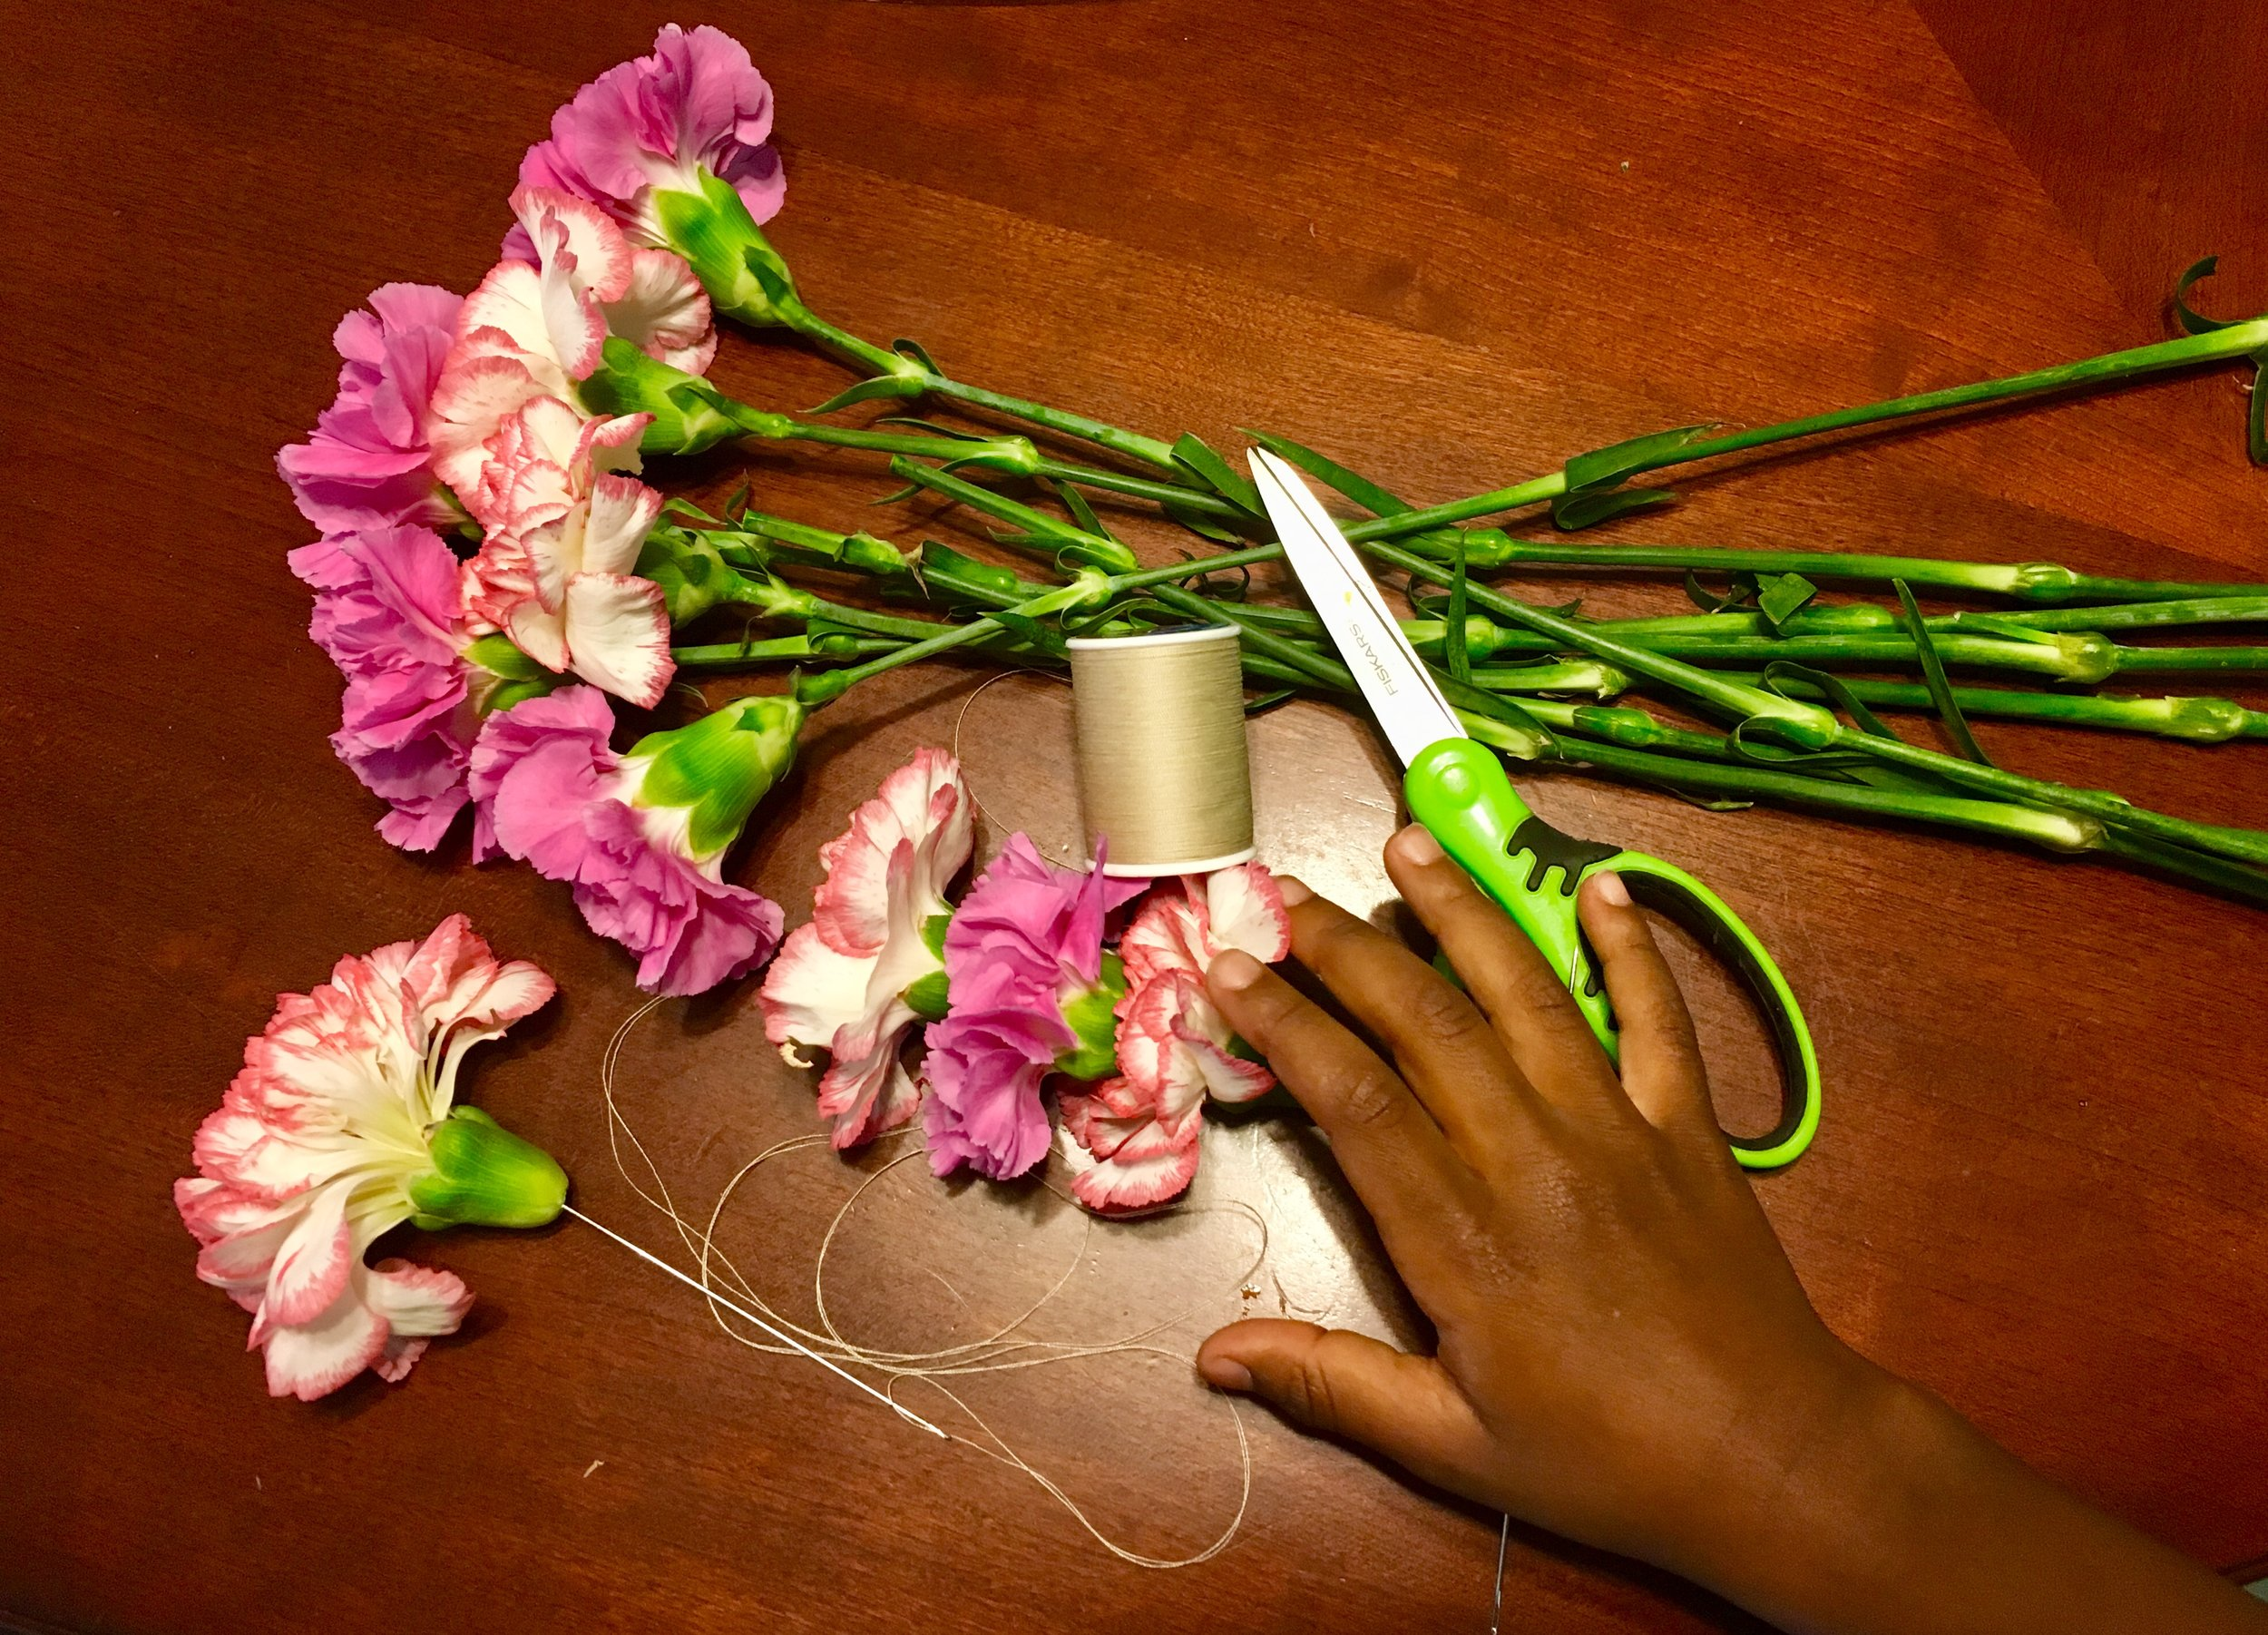 Making a lei is pretty easy! Supervise the littles with those needles though!